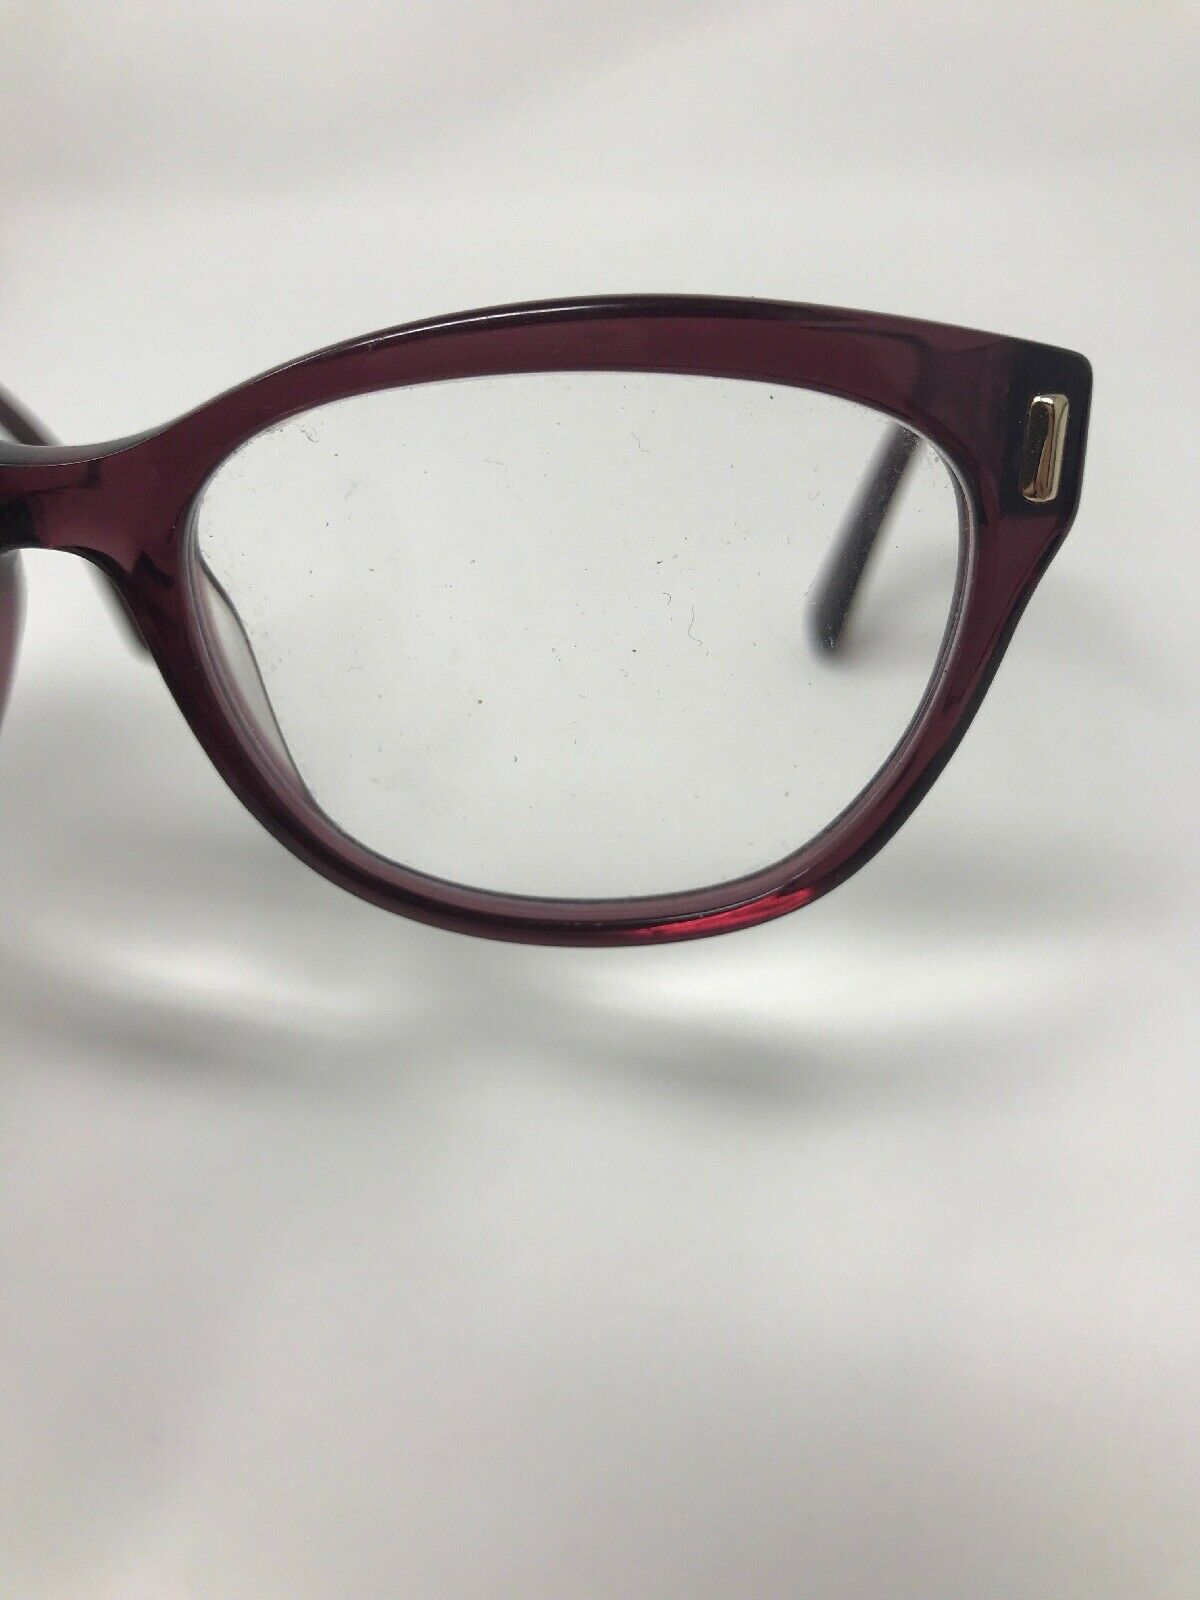 CALVIN KLEIN Eyeglasses Frame CK8530 507 Collection 53-17-135 Crystal Plum S346